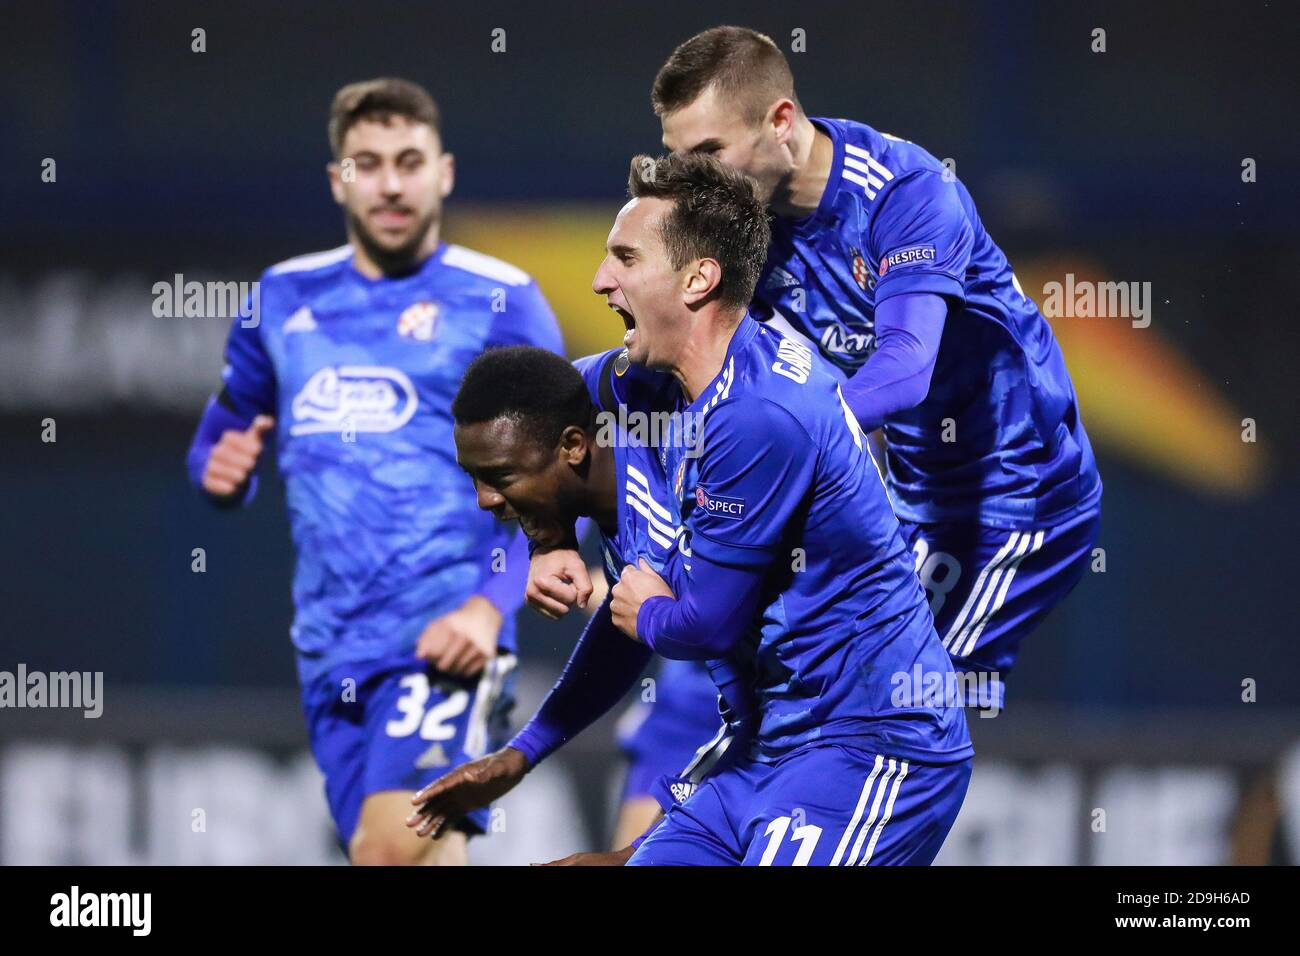 Gnk Dinamo Zagreb High Resolution Stock Photography And Images Alamy